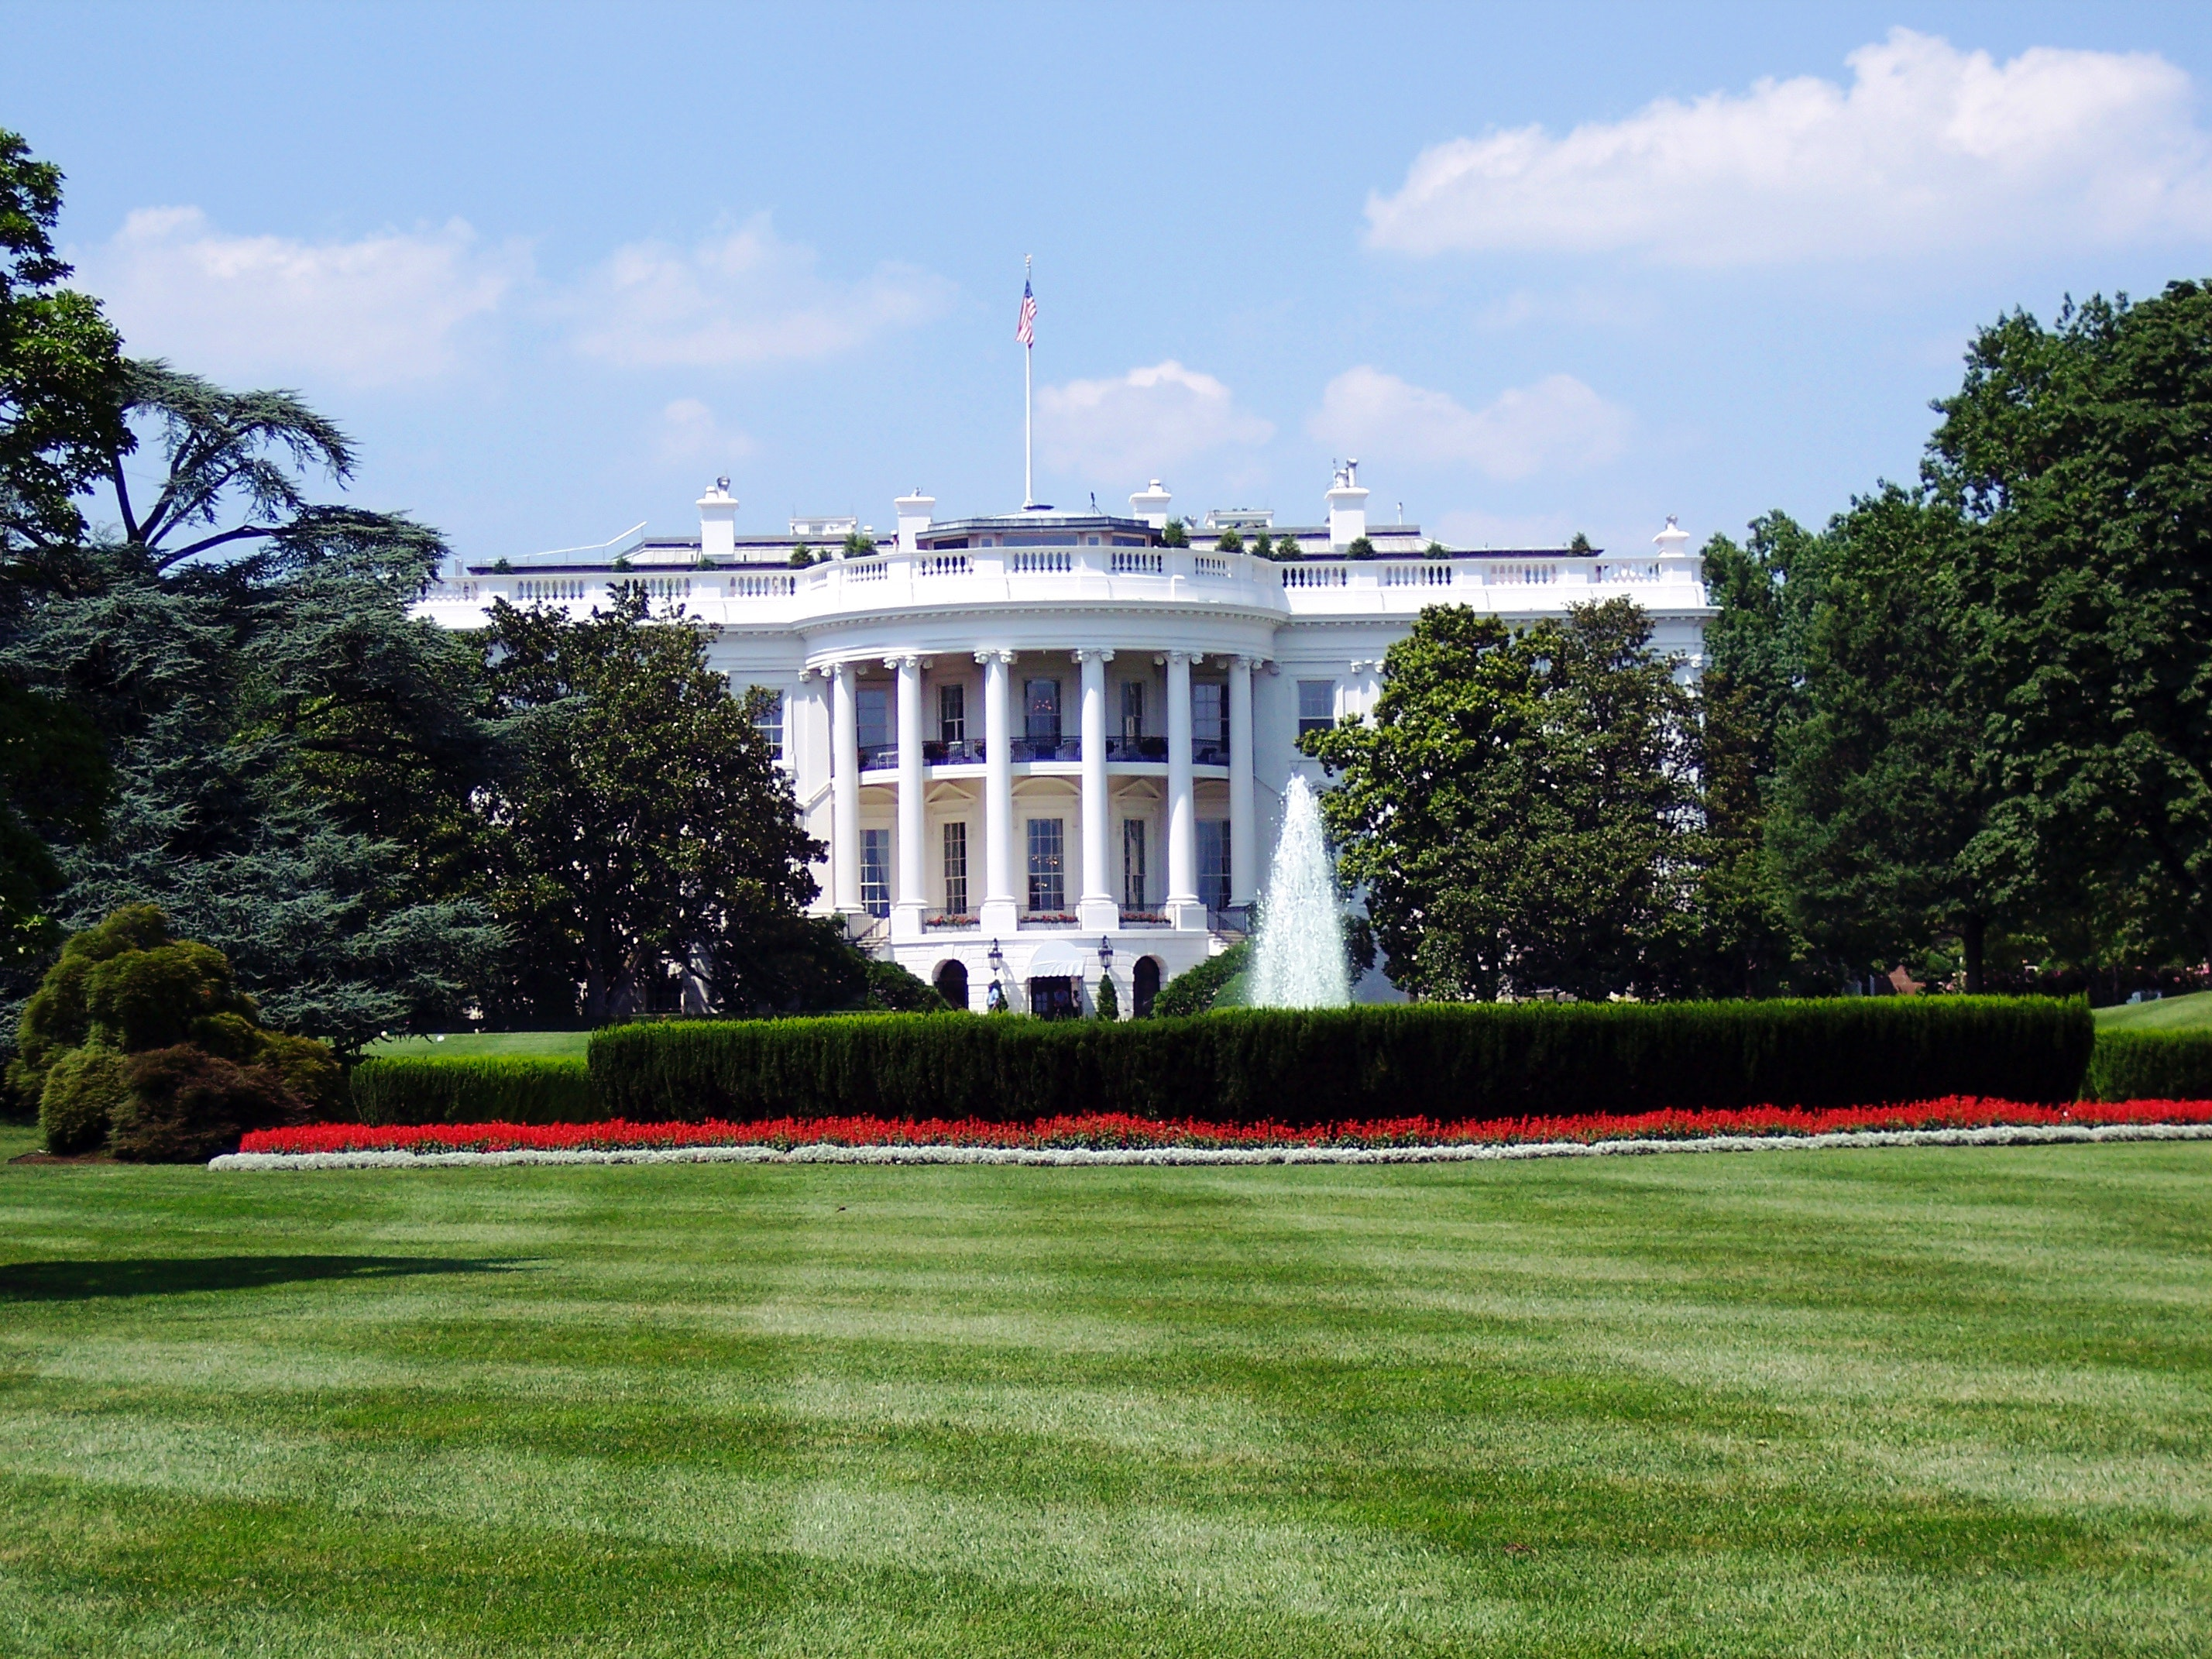 STEM Education Coalition to Join Landmark White House Gathering of Nationwide STEM Leaders